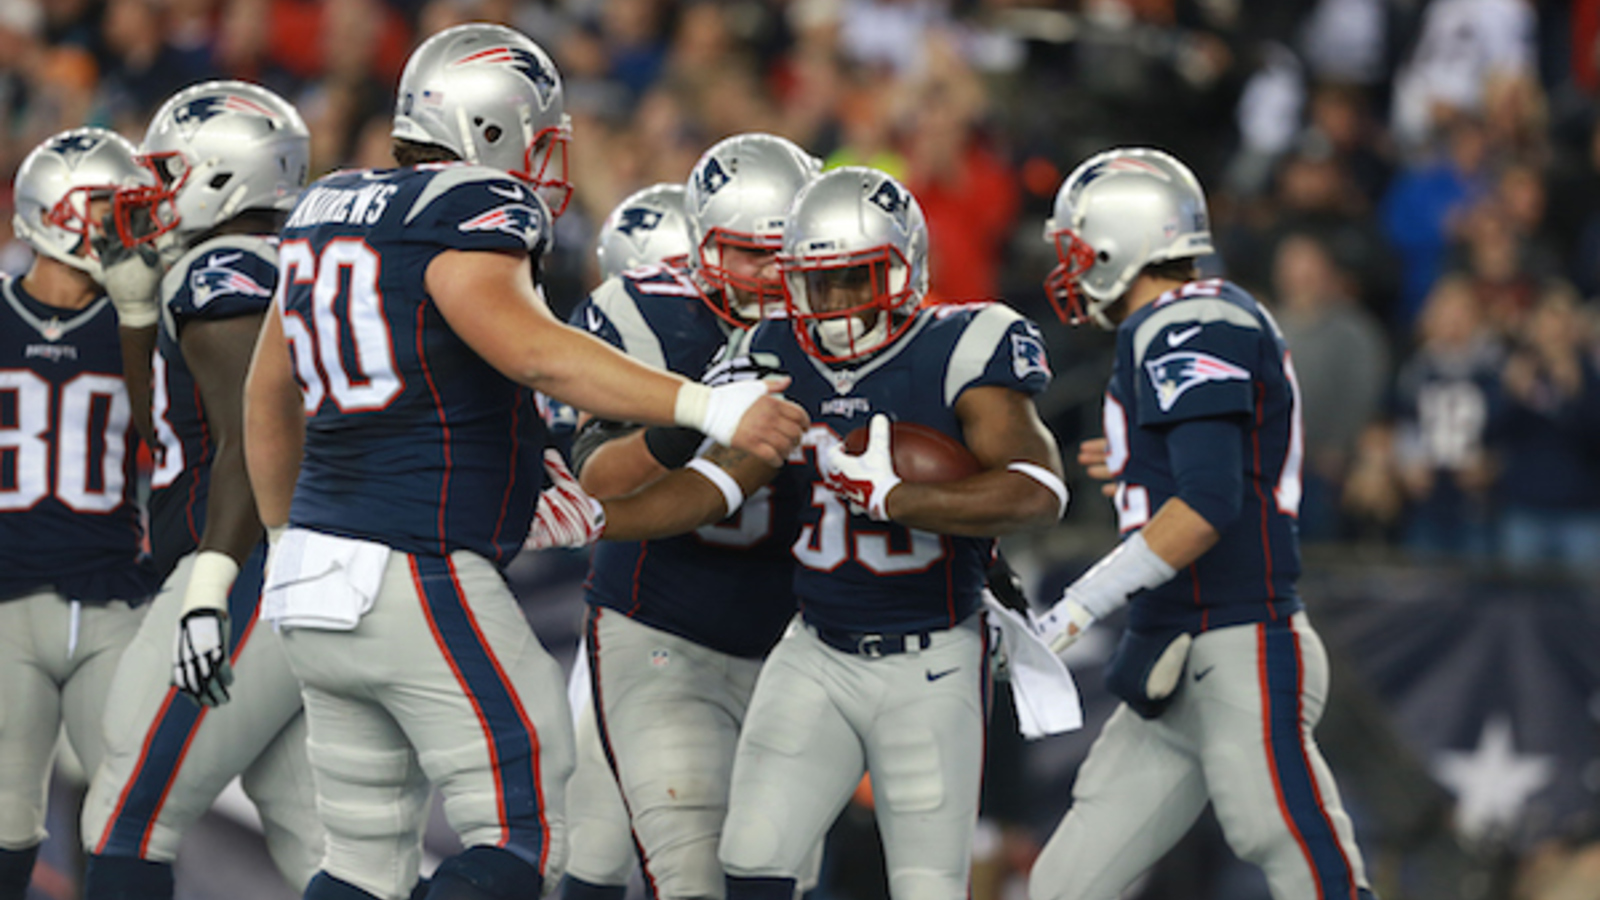 Patriots overcoming injuries on offensive line